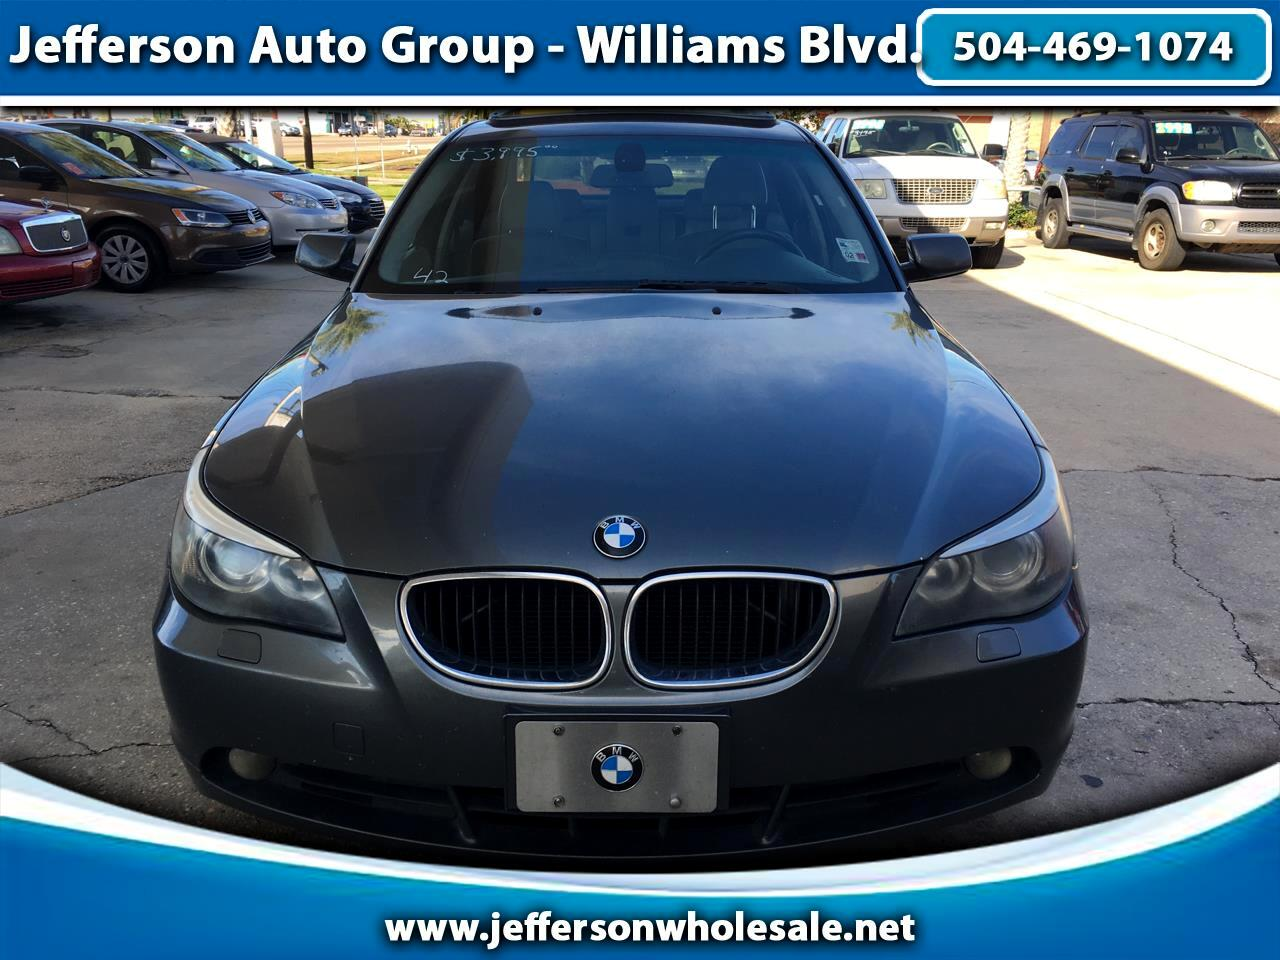 2004 BMW 5 Series 525i 4dr Sdn